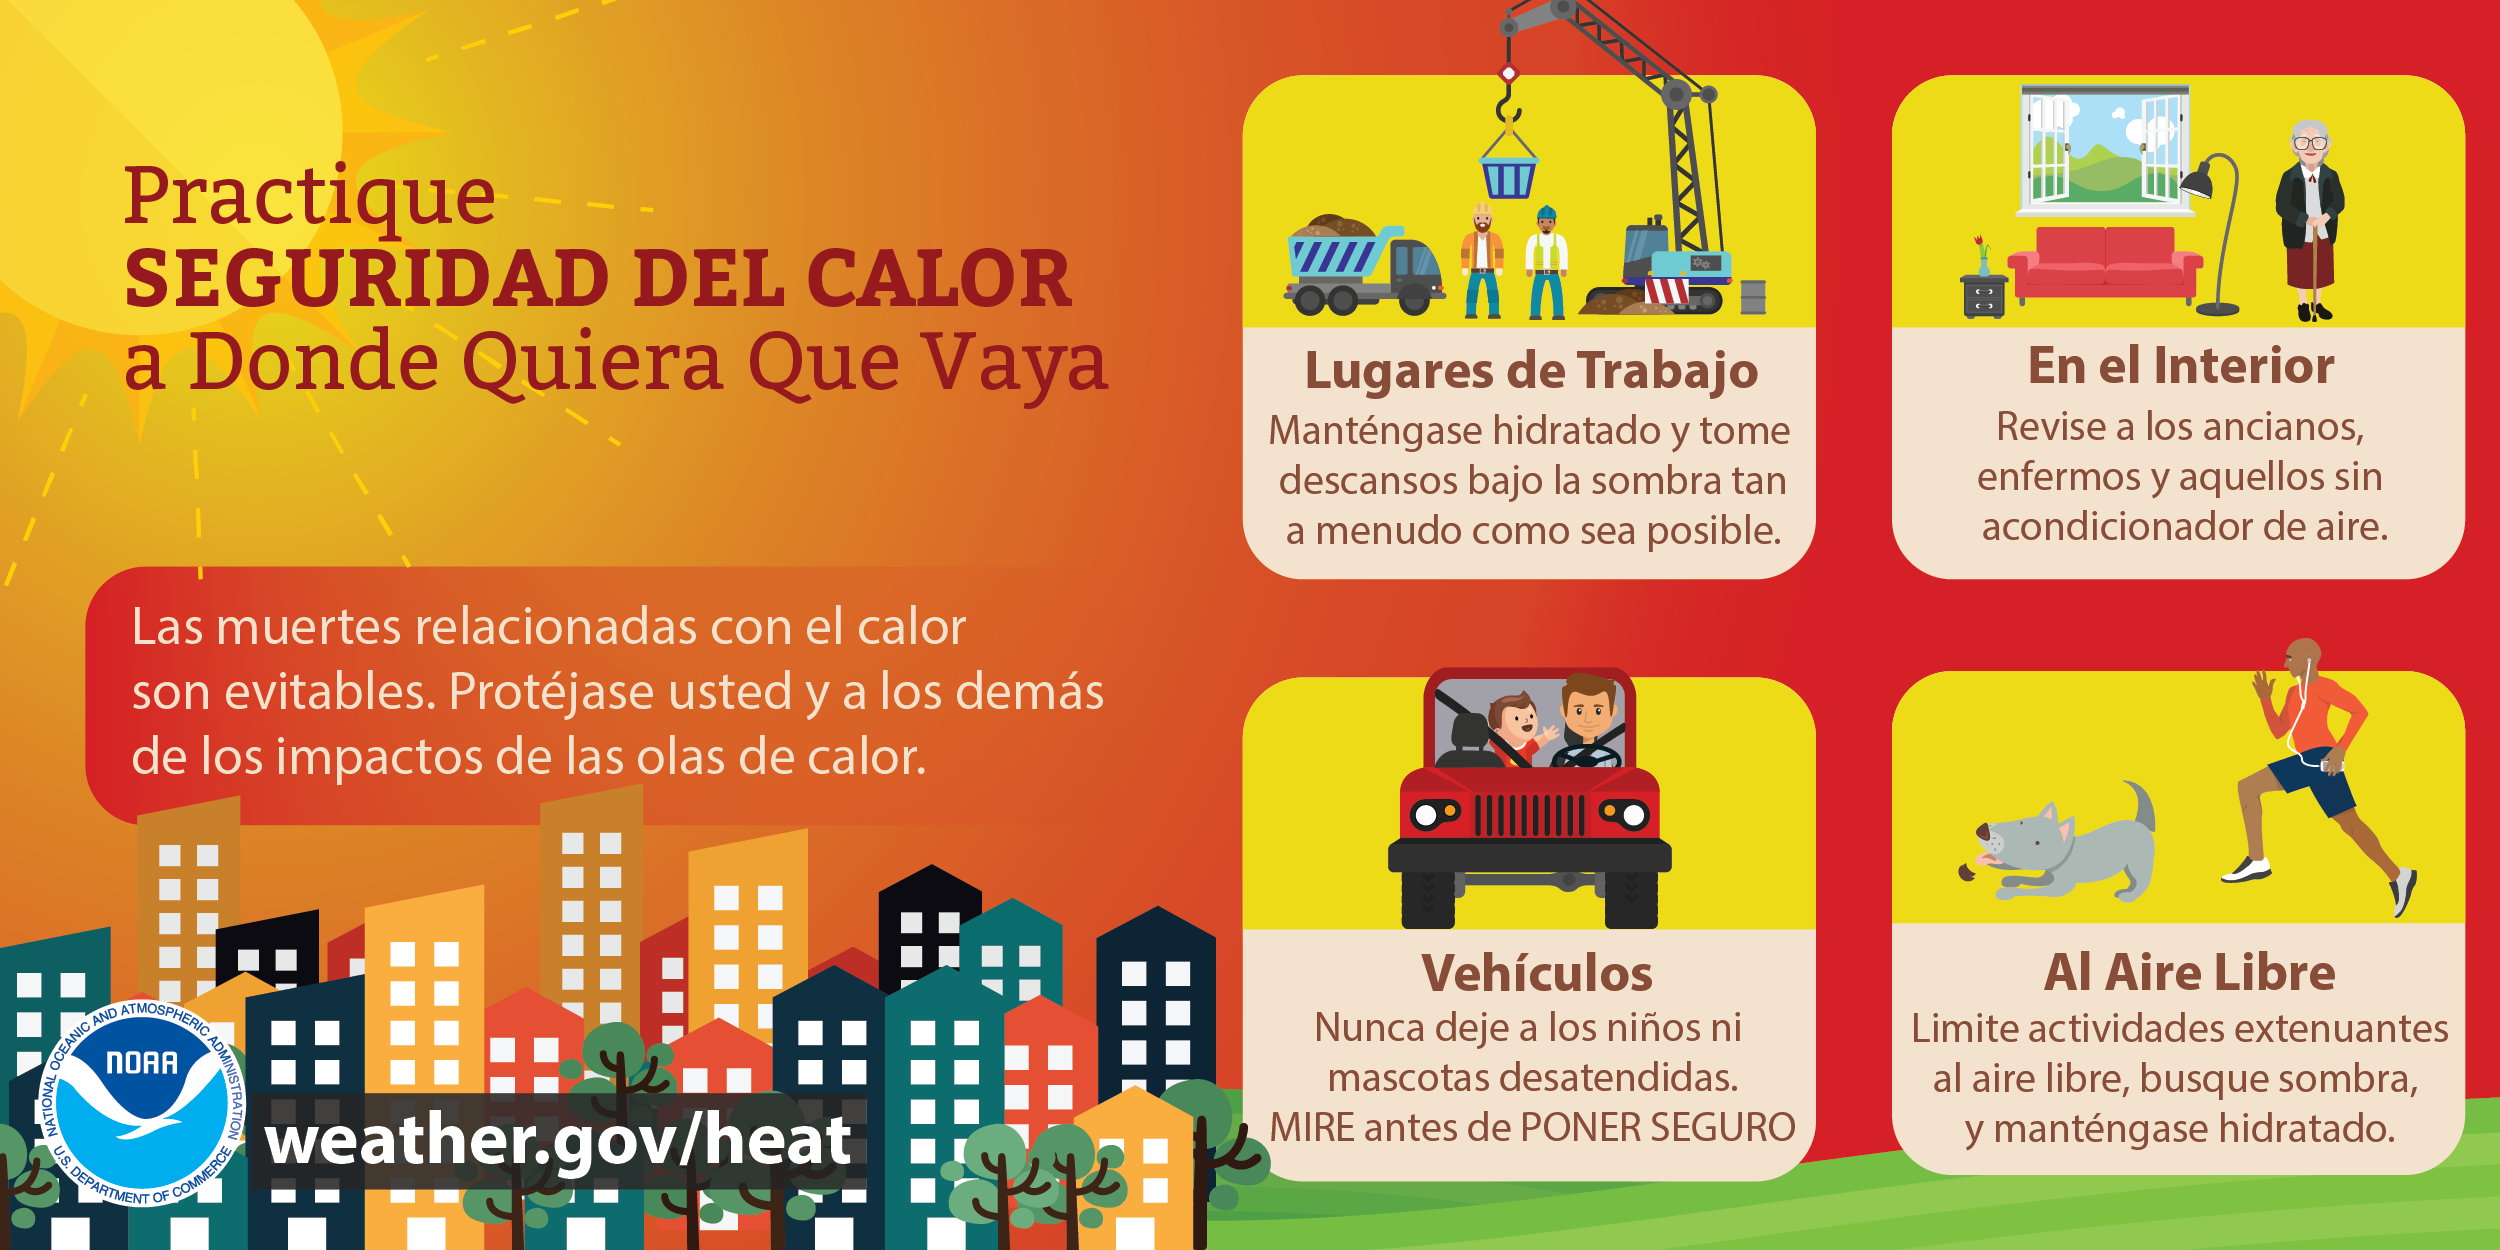 practique seguridad del calor